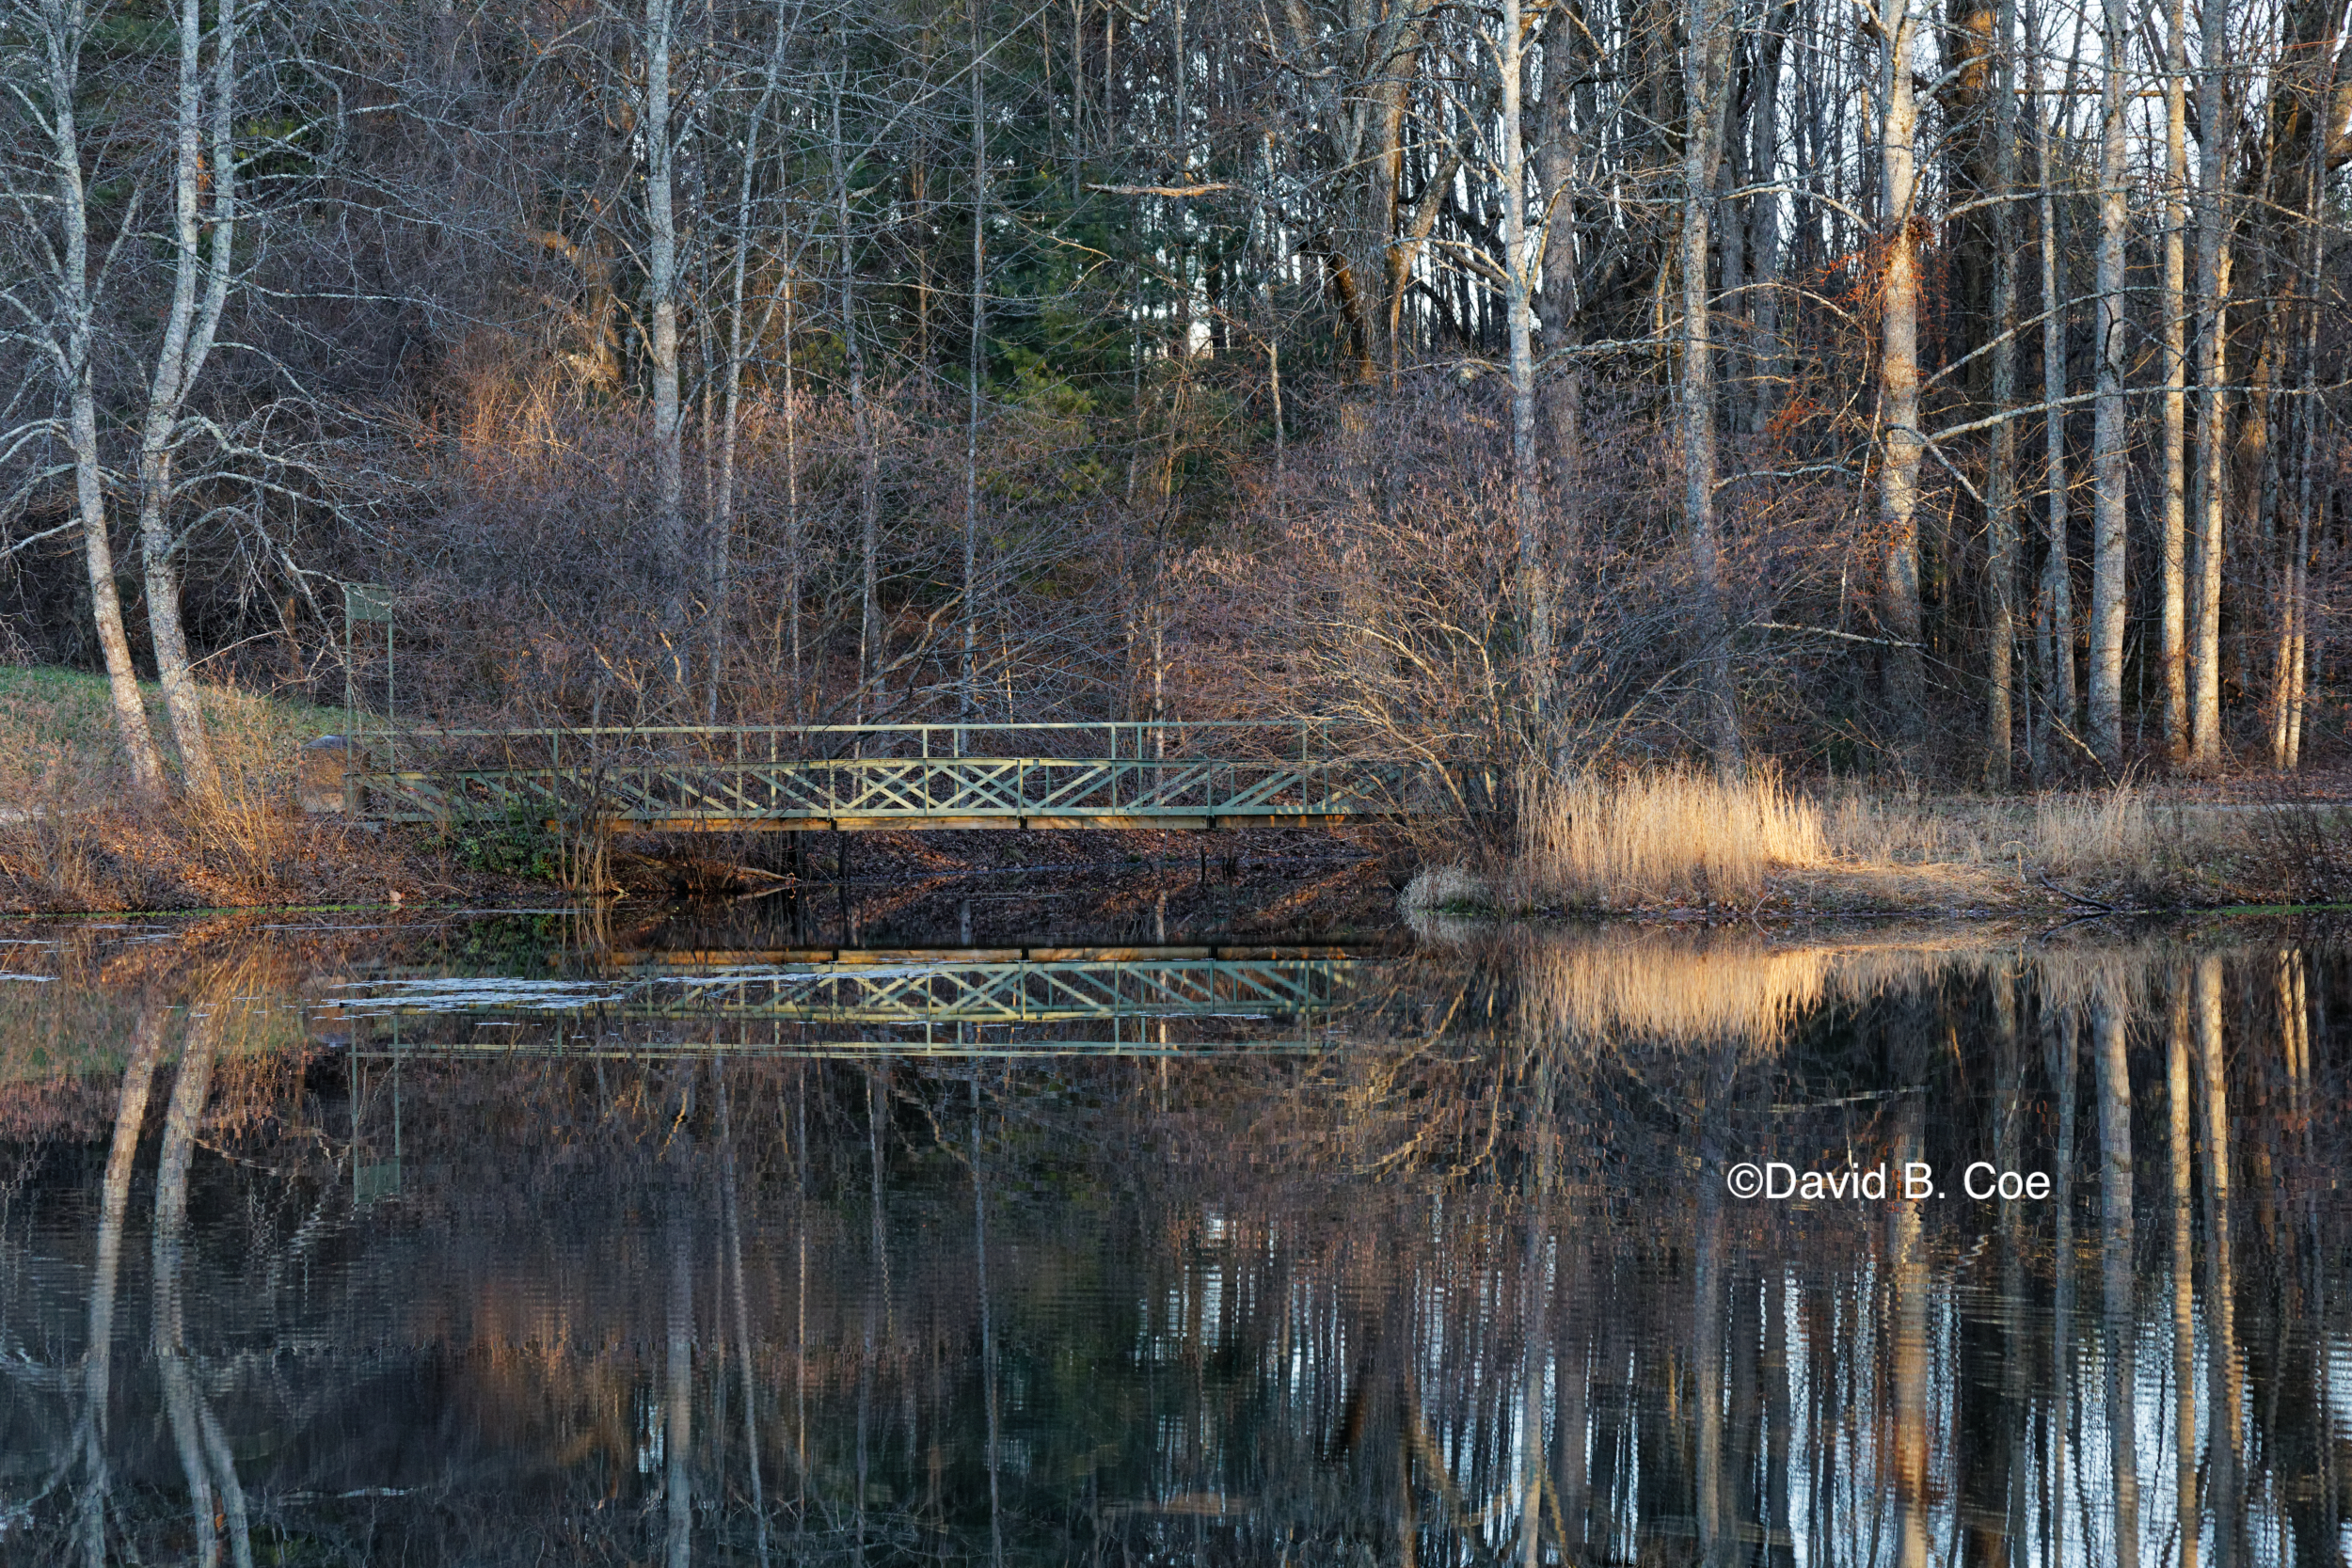 Walking Bridge at the Golden Hour, by David B. Coe